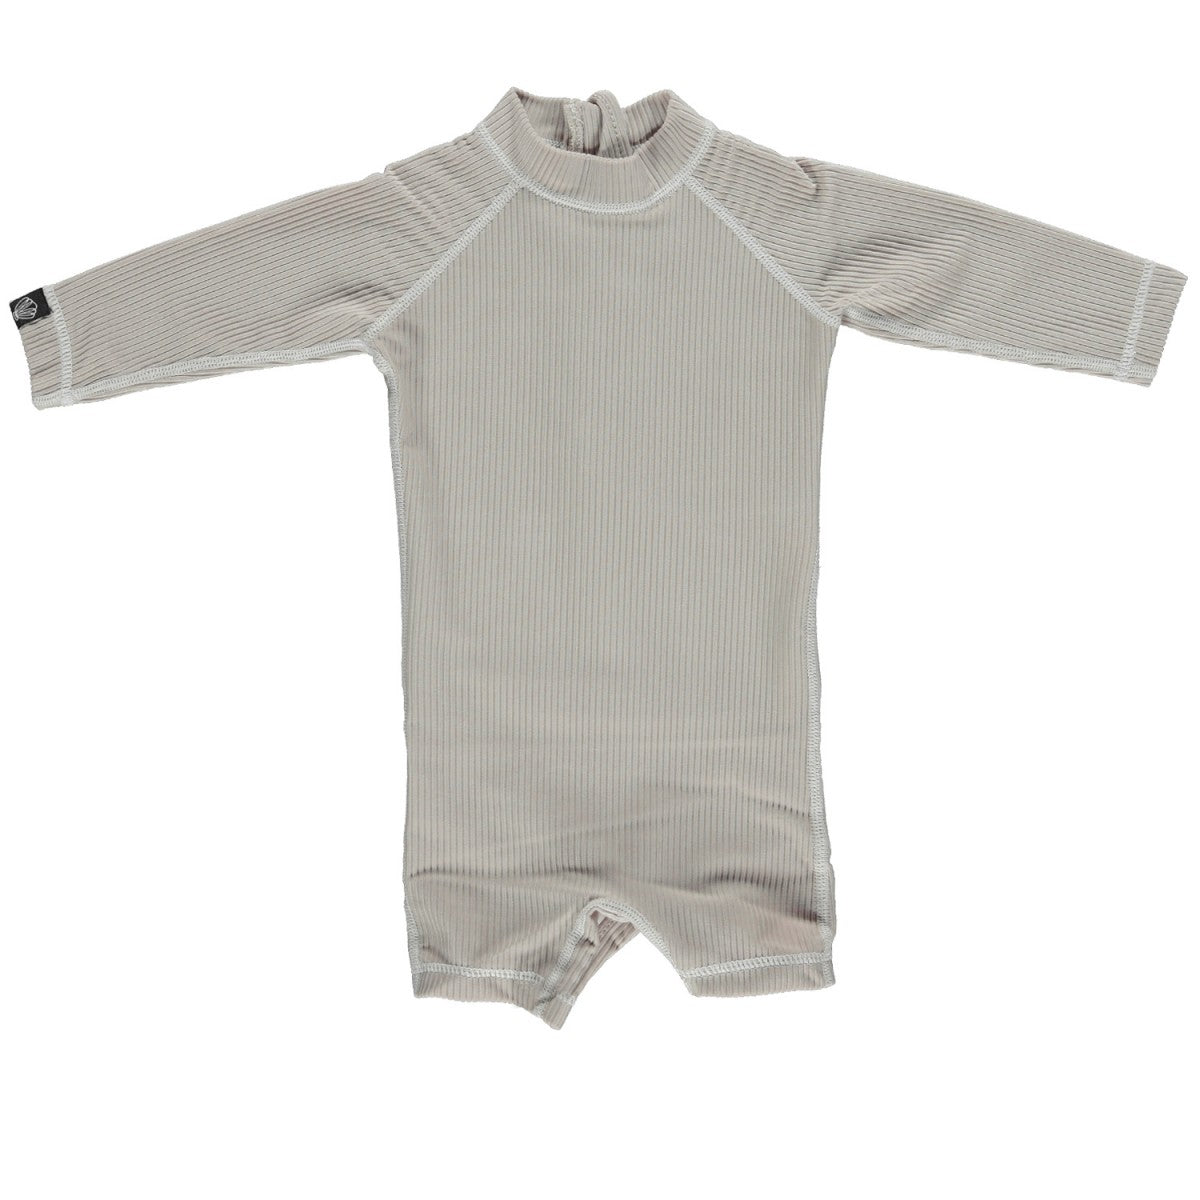 Beach & Bandits Beach & Bandits Sand Ribbed Baby Suit - Pearls & Swines